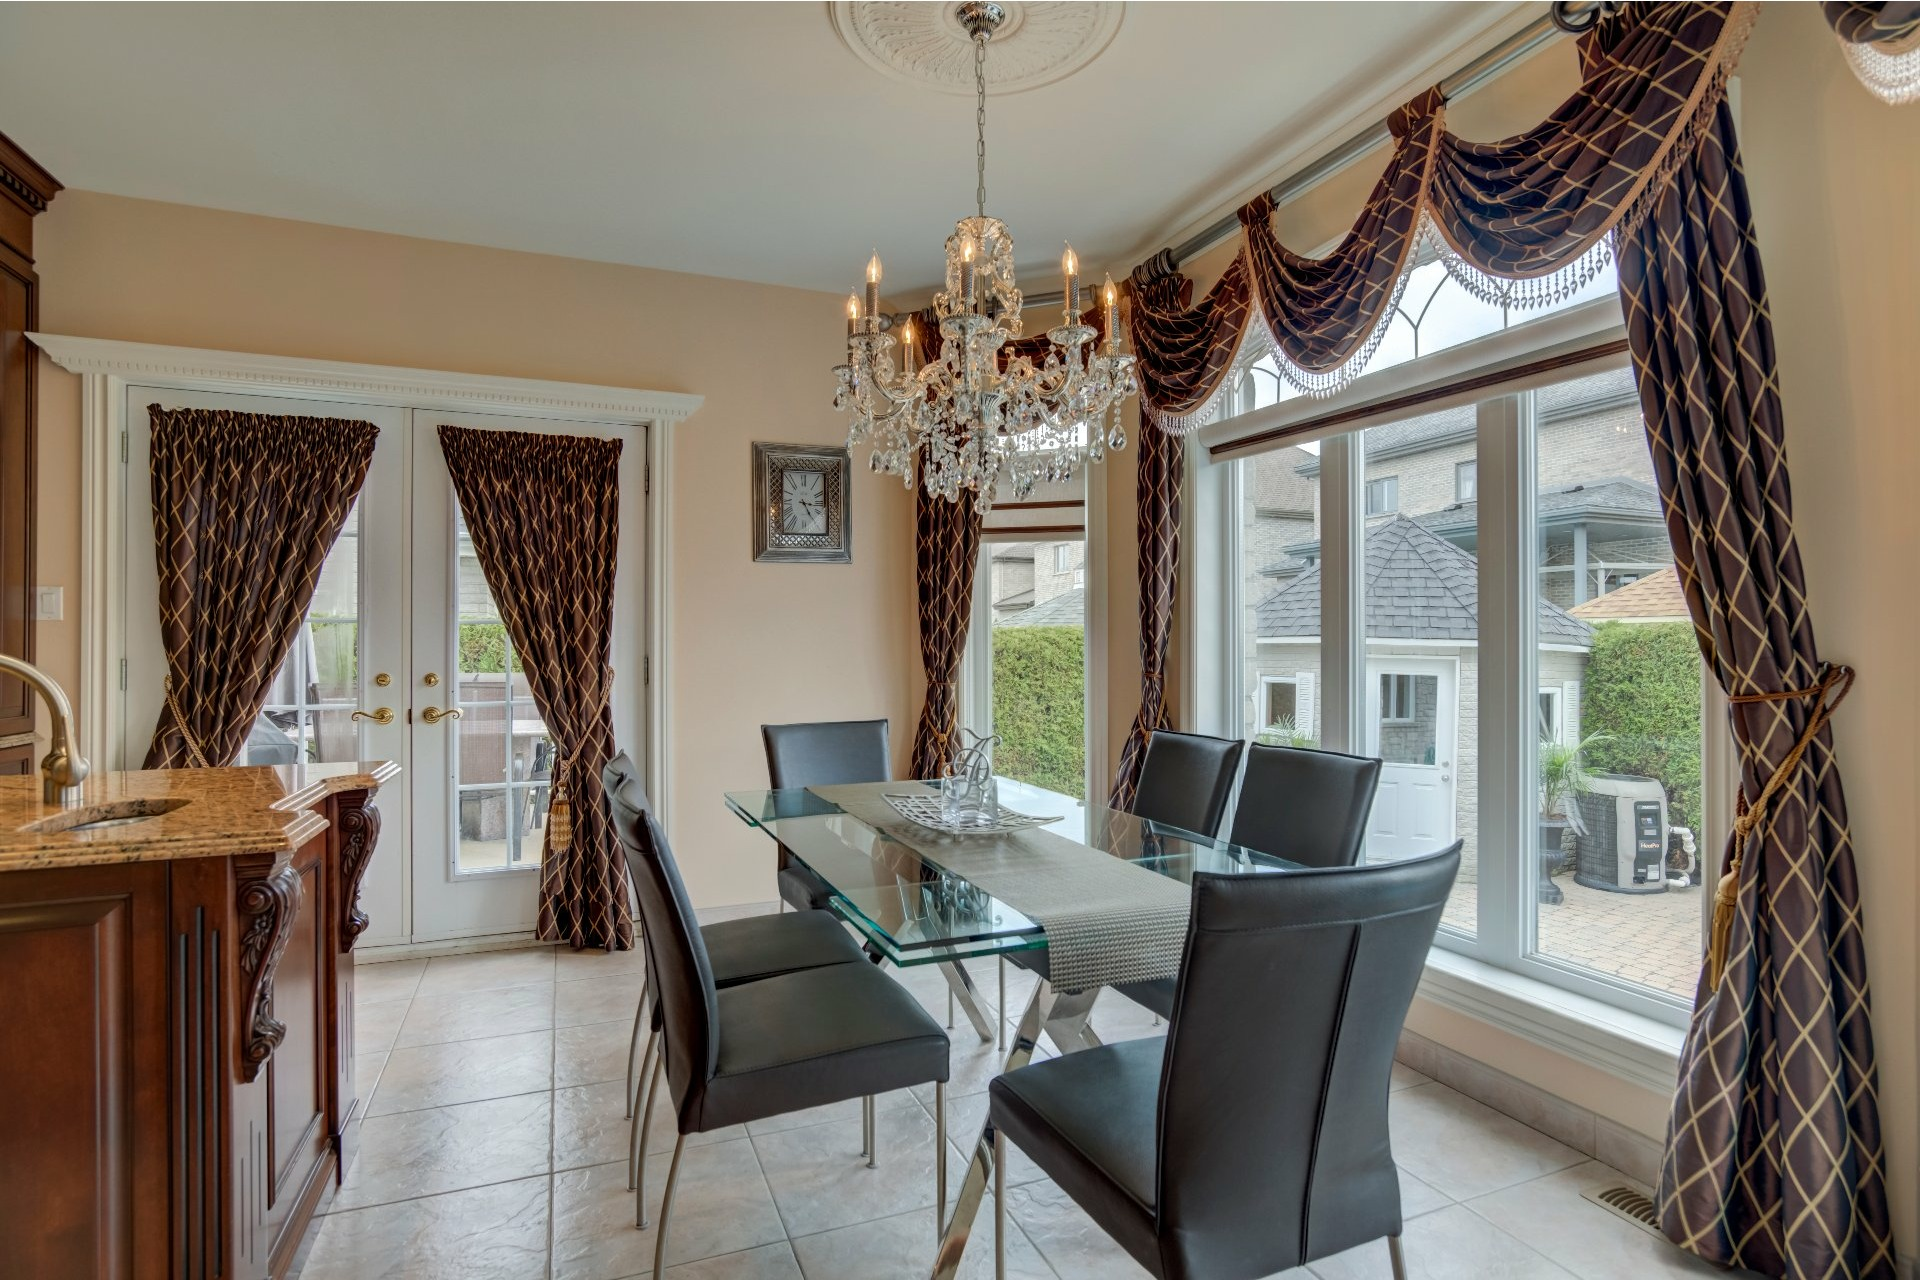 image 9 - House For sale Duvernay Laval  - 13 rooms